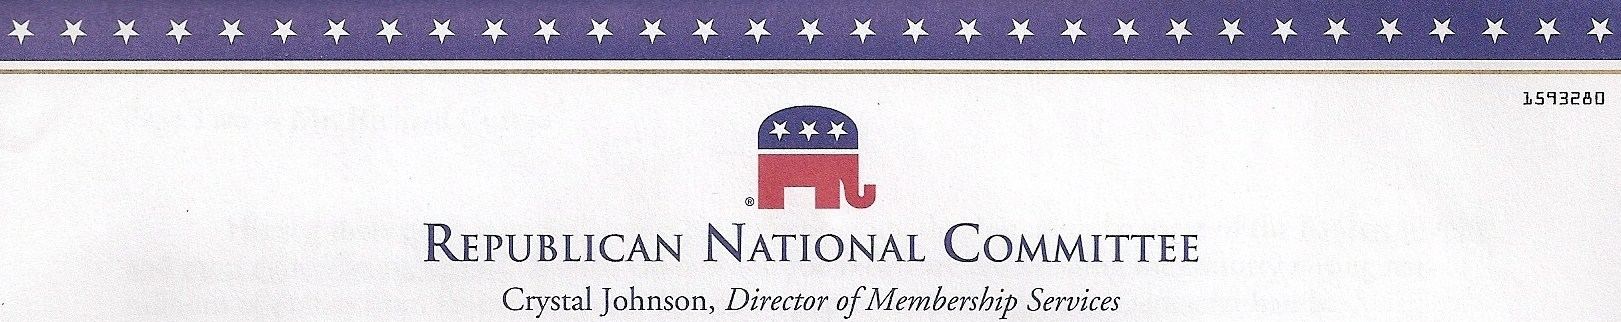 Republican National Committee letterhead